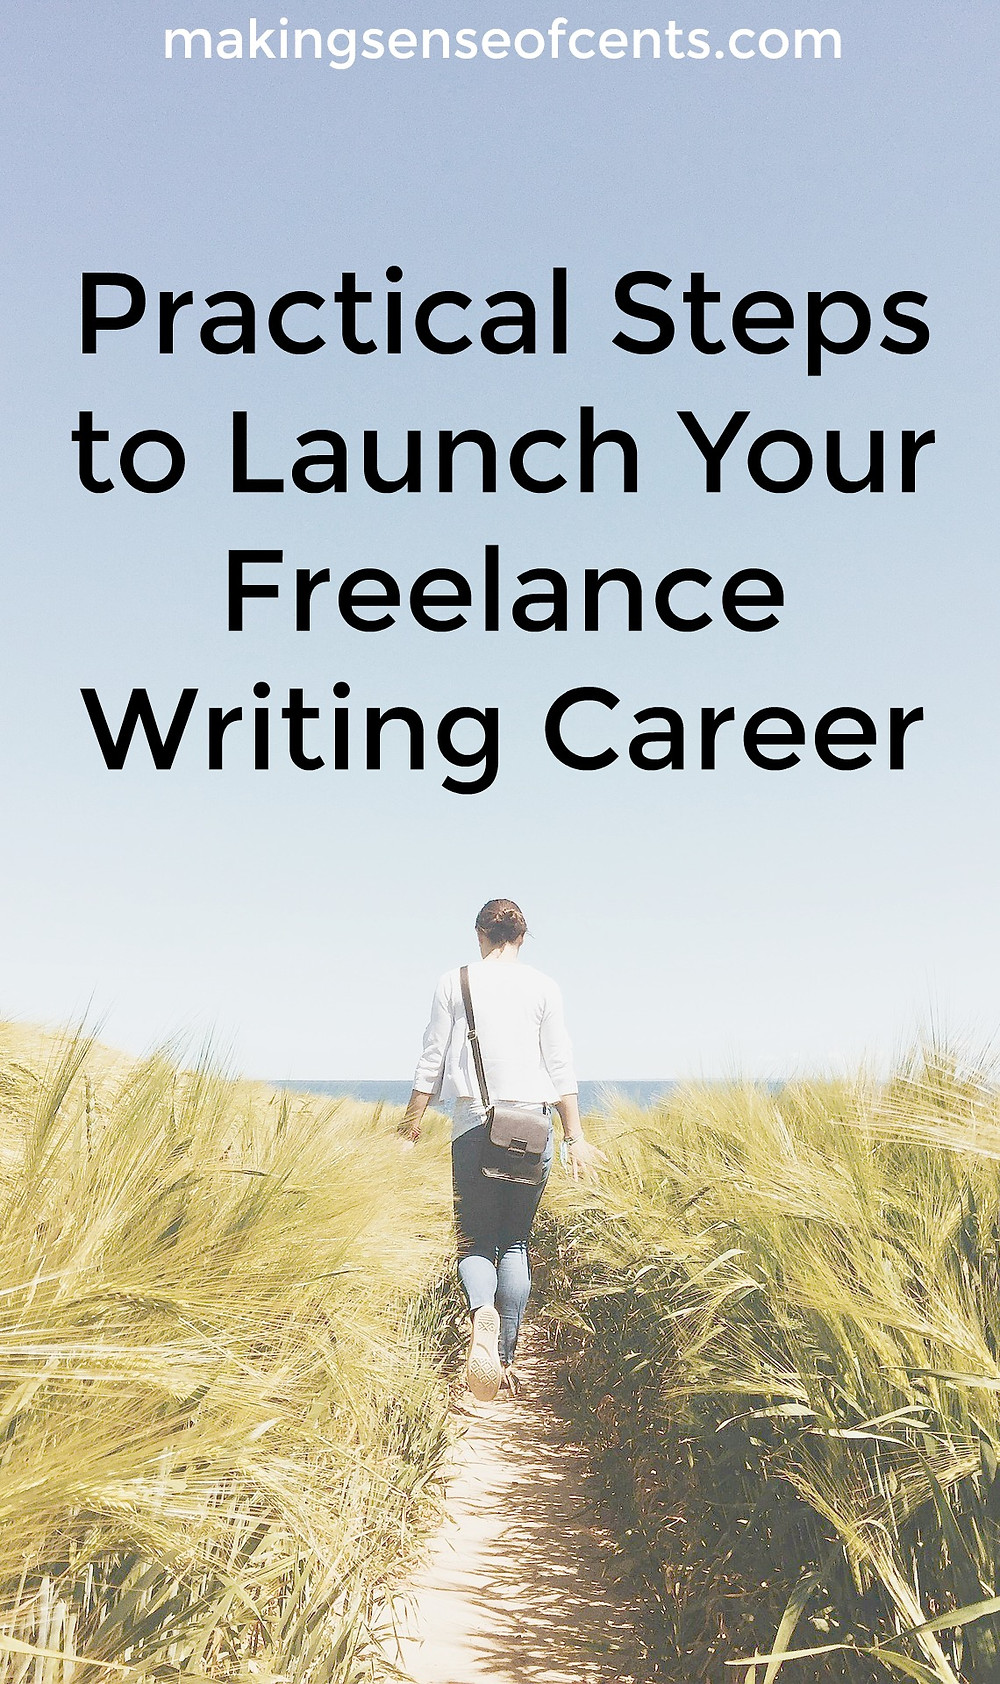 Check out these practical steps tol aunch your freelance writing career. This is a great list!